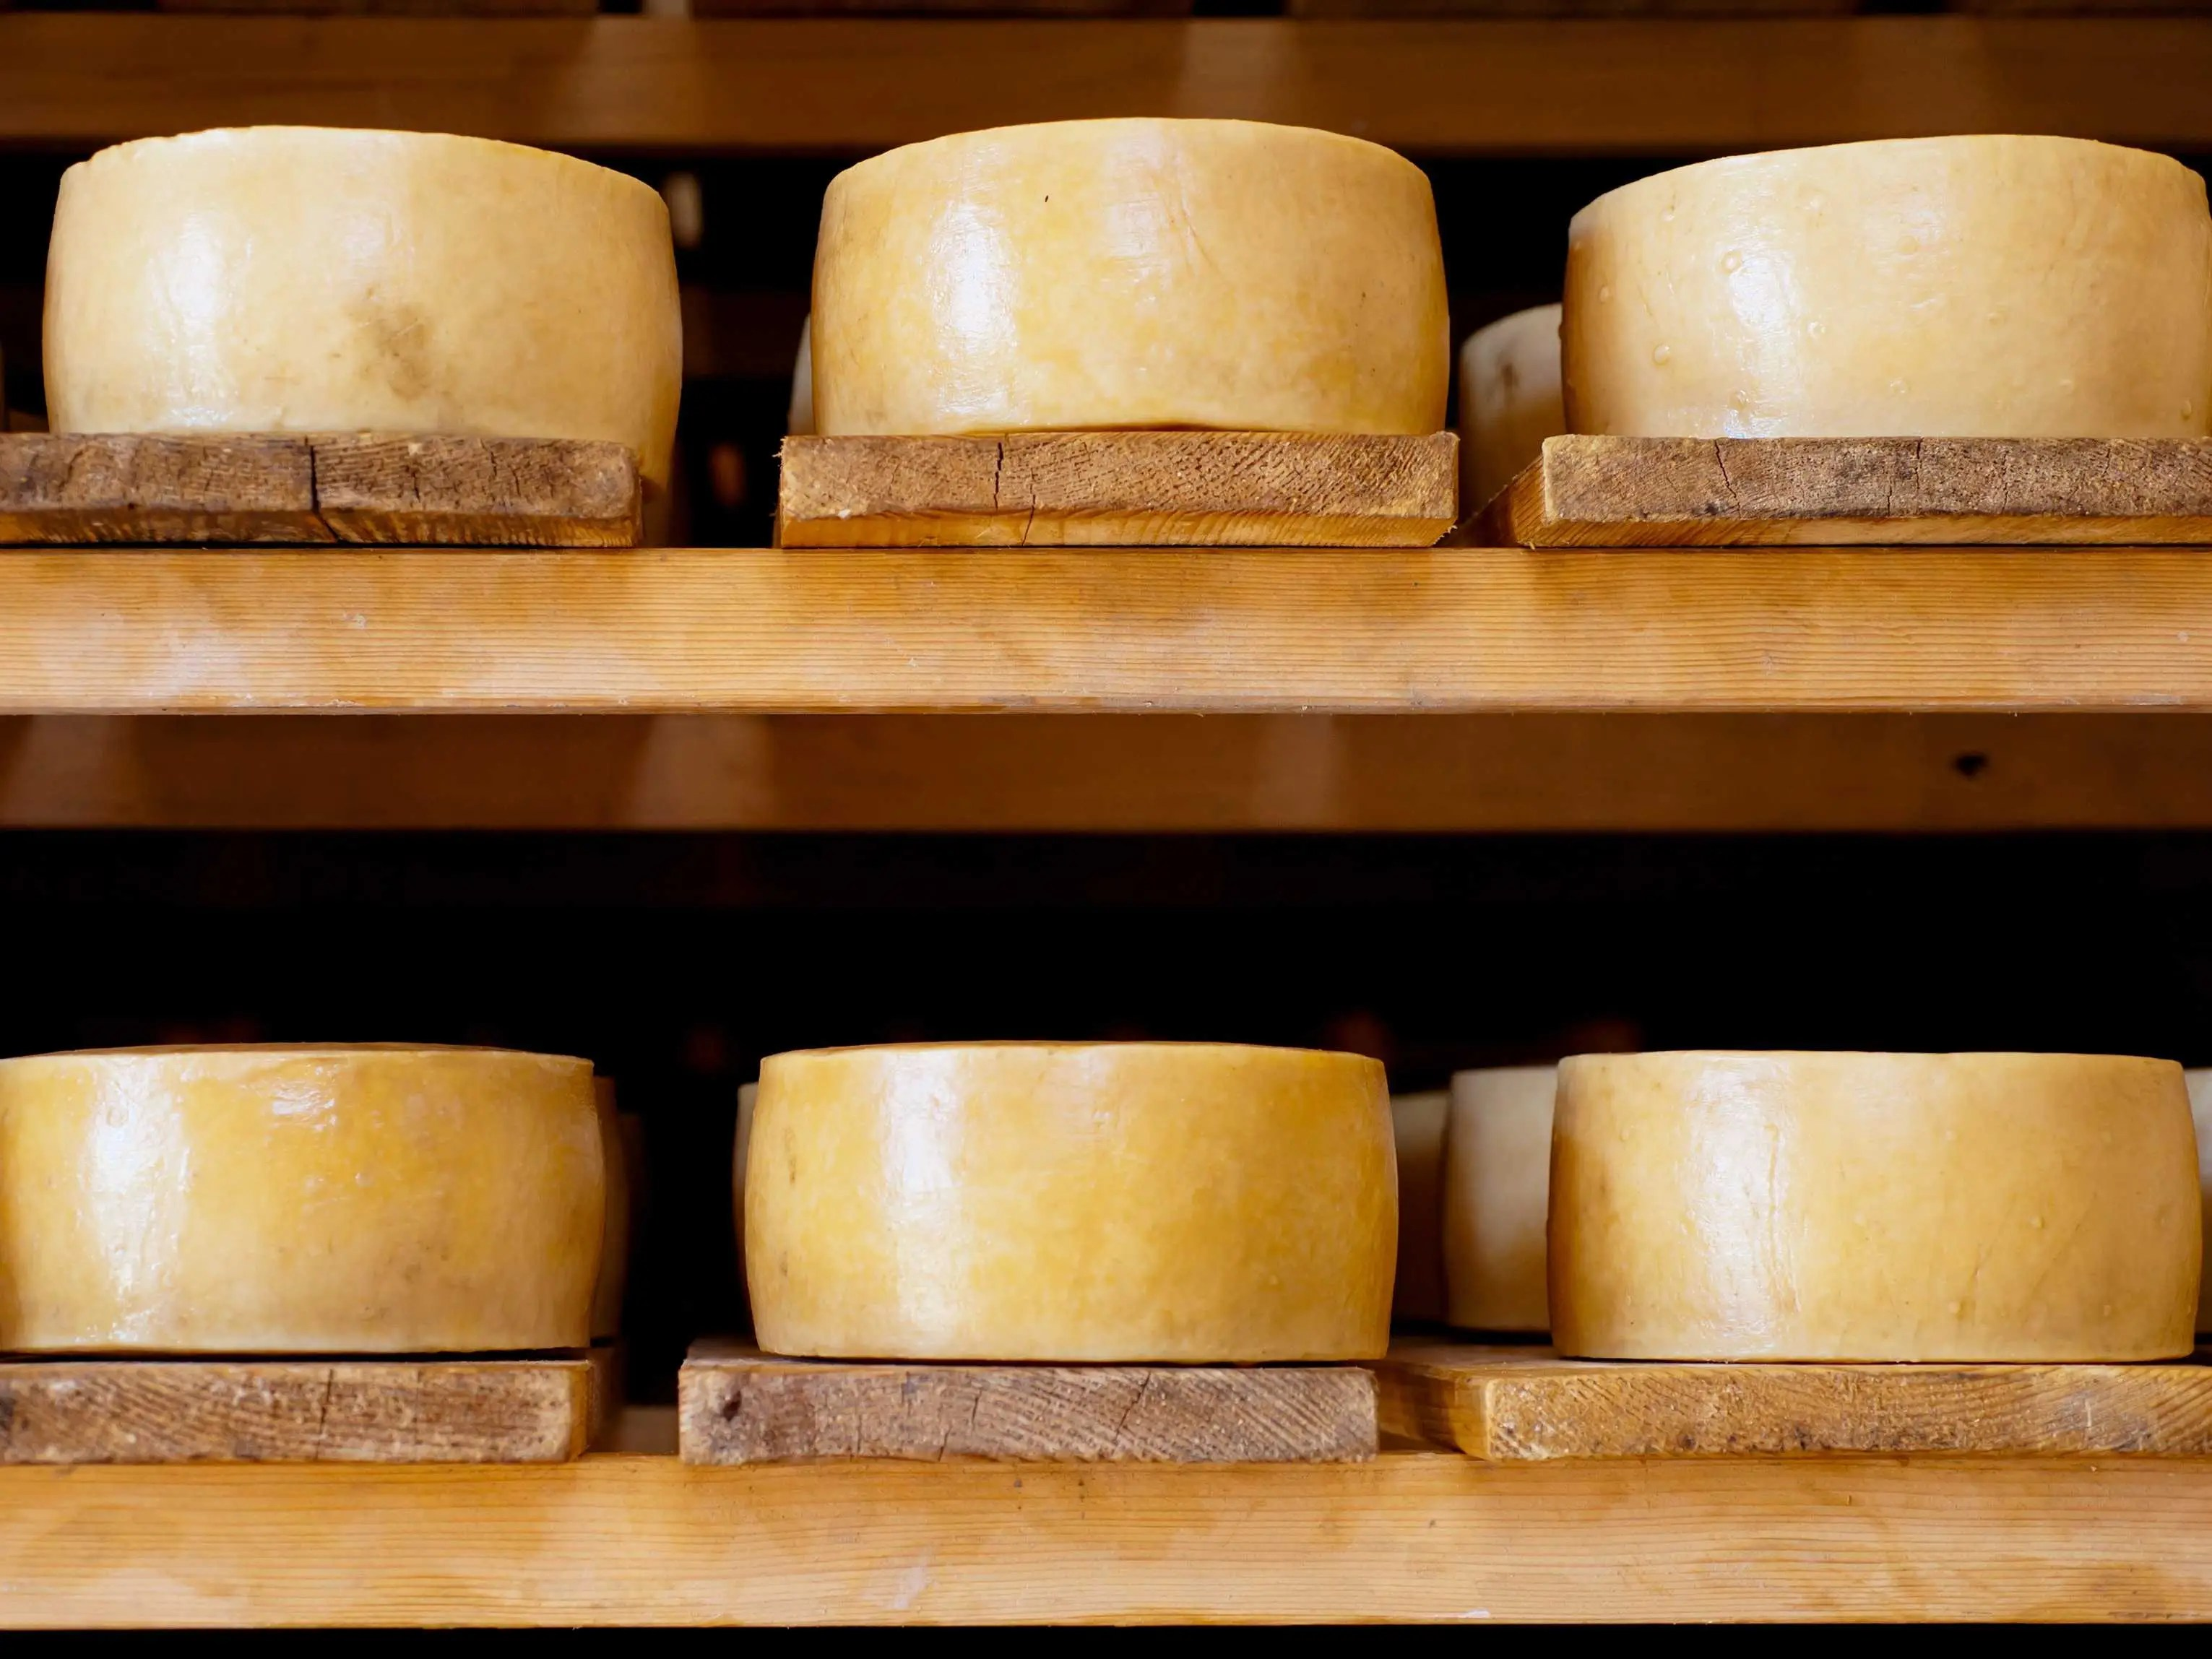 Sample Paški sir, the famous artisanal sheep milk cheese made on the Croatian island of Pag.